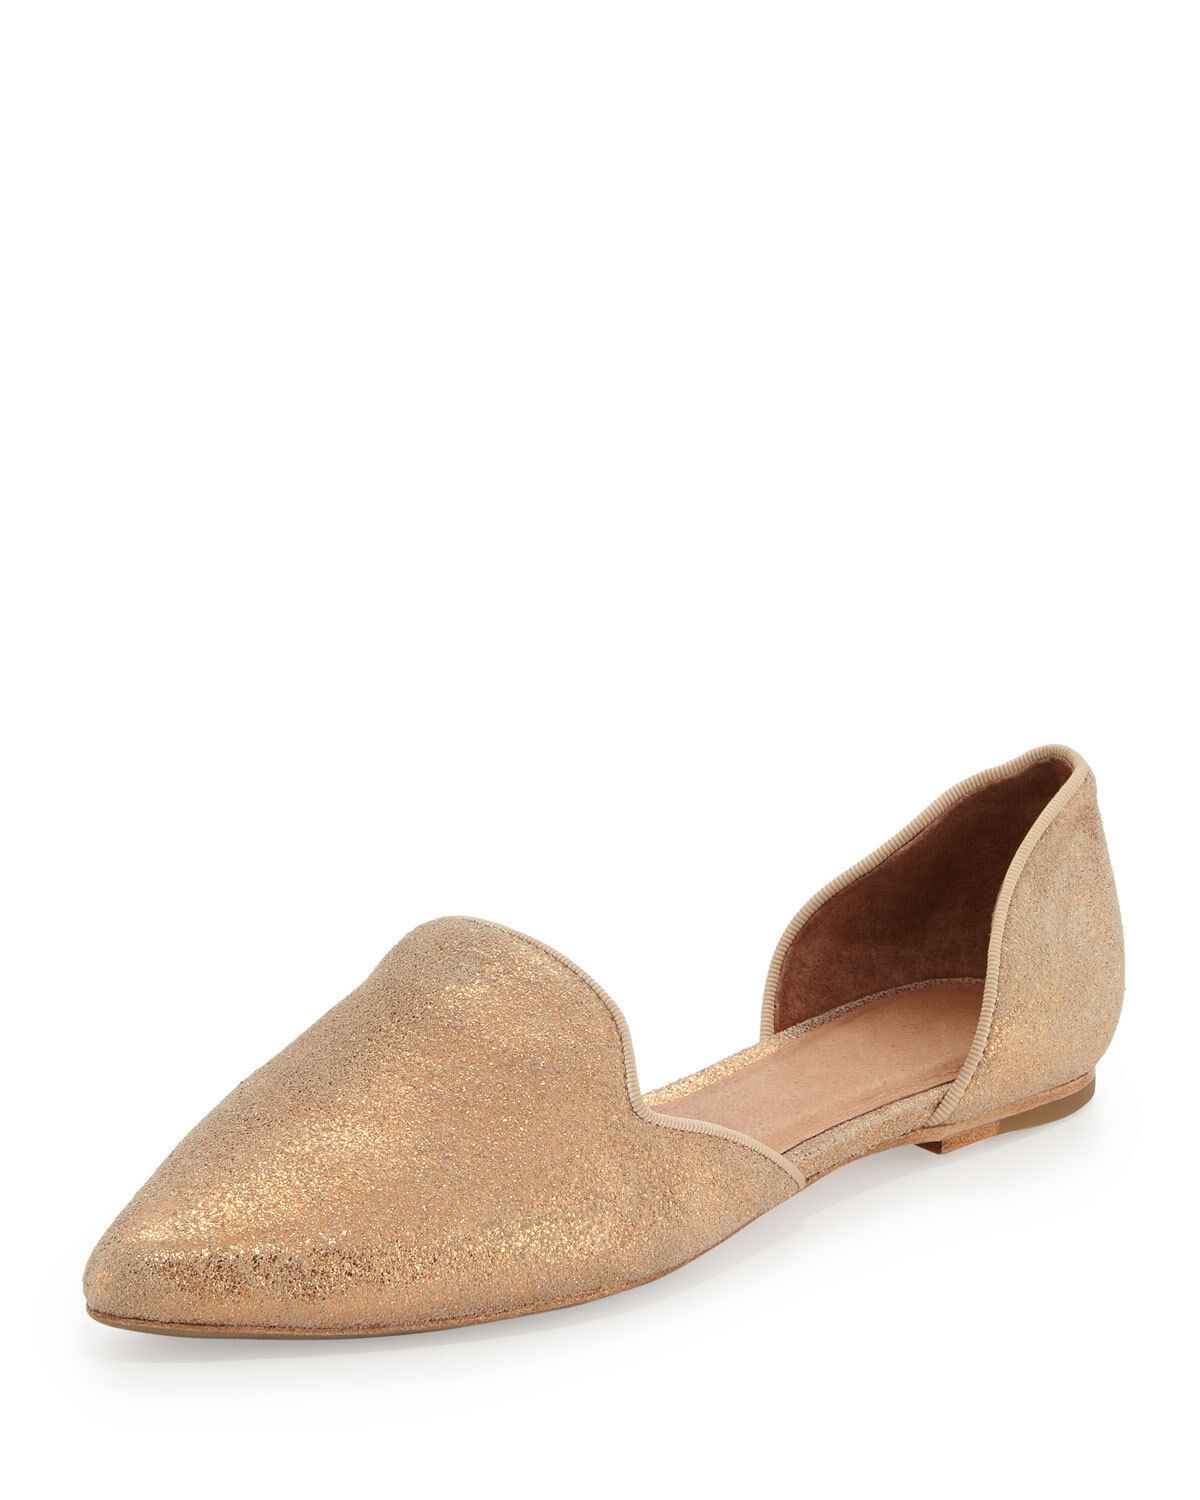 Joie Florence Metallic Shimmery d'Orsay Flat, Rose Gold SIZE 36 (6)    v530